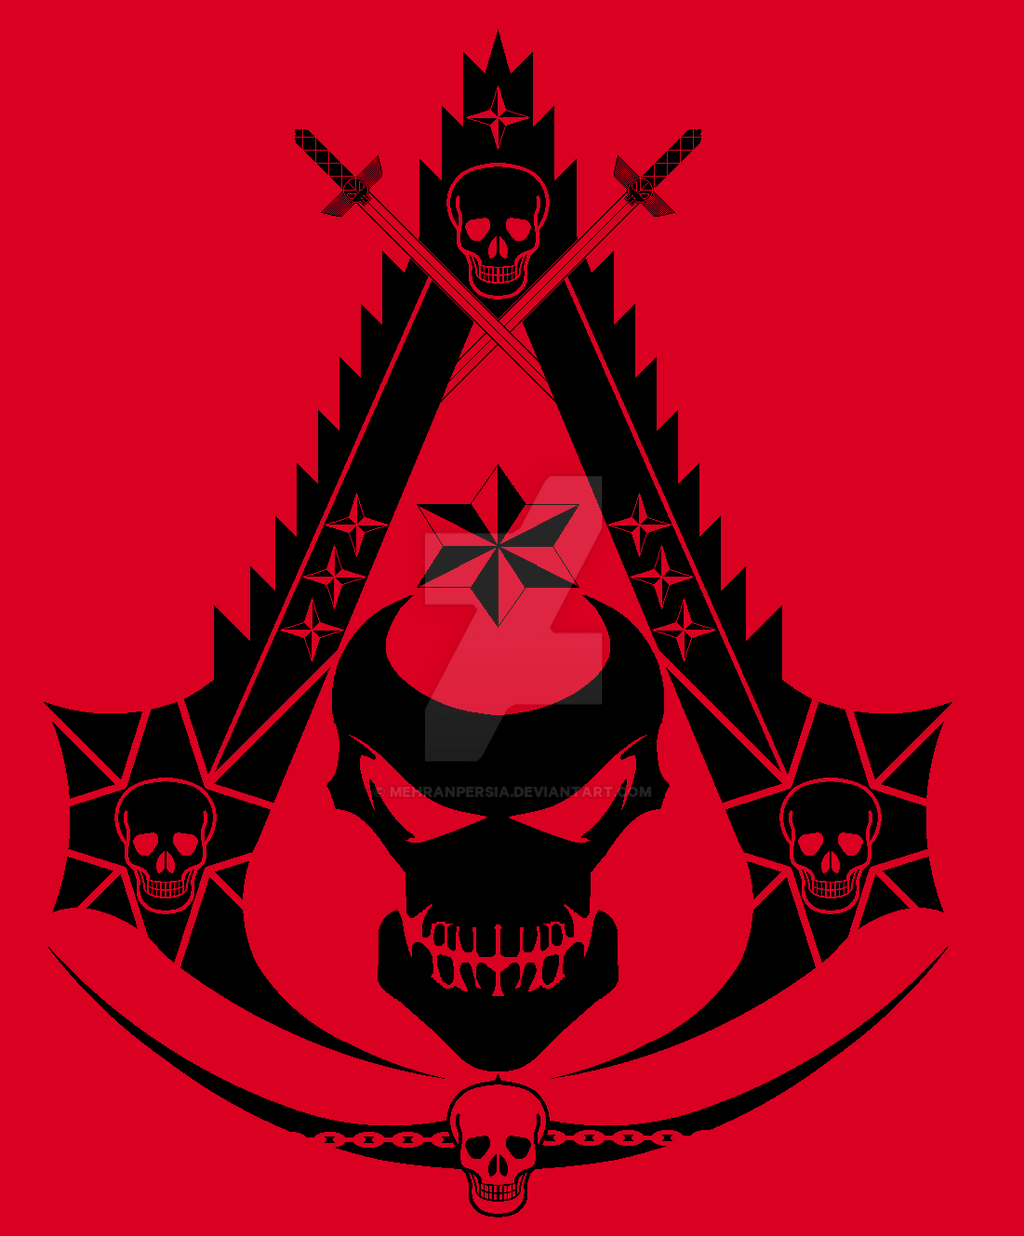 death assassin symbol by mehranpersia on deviantart